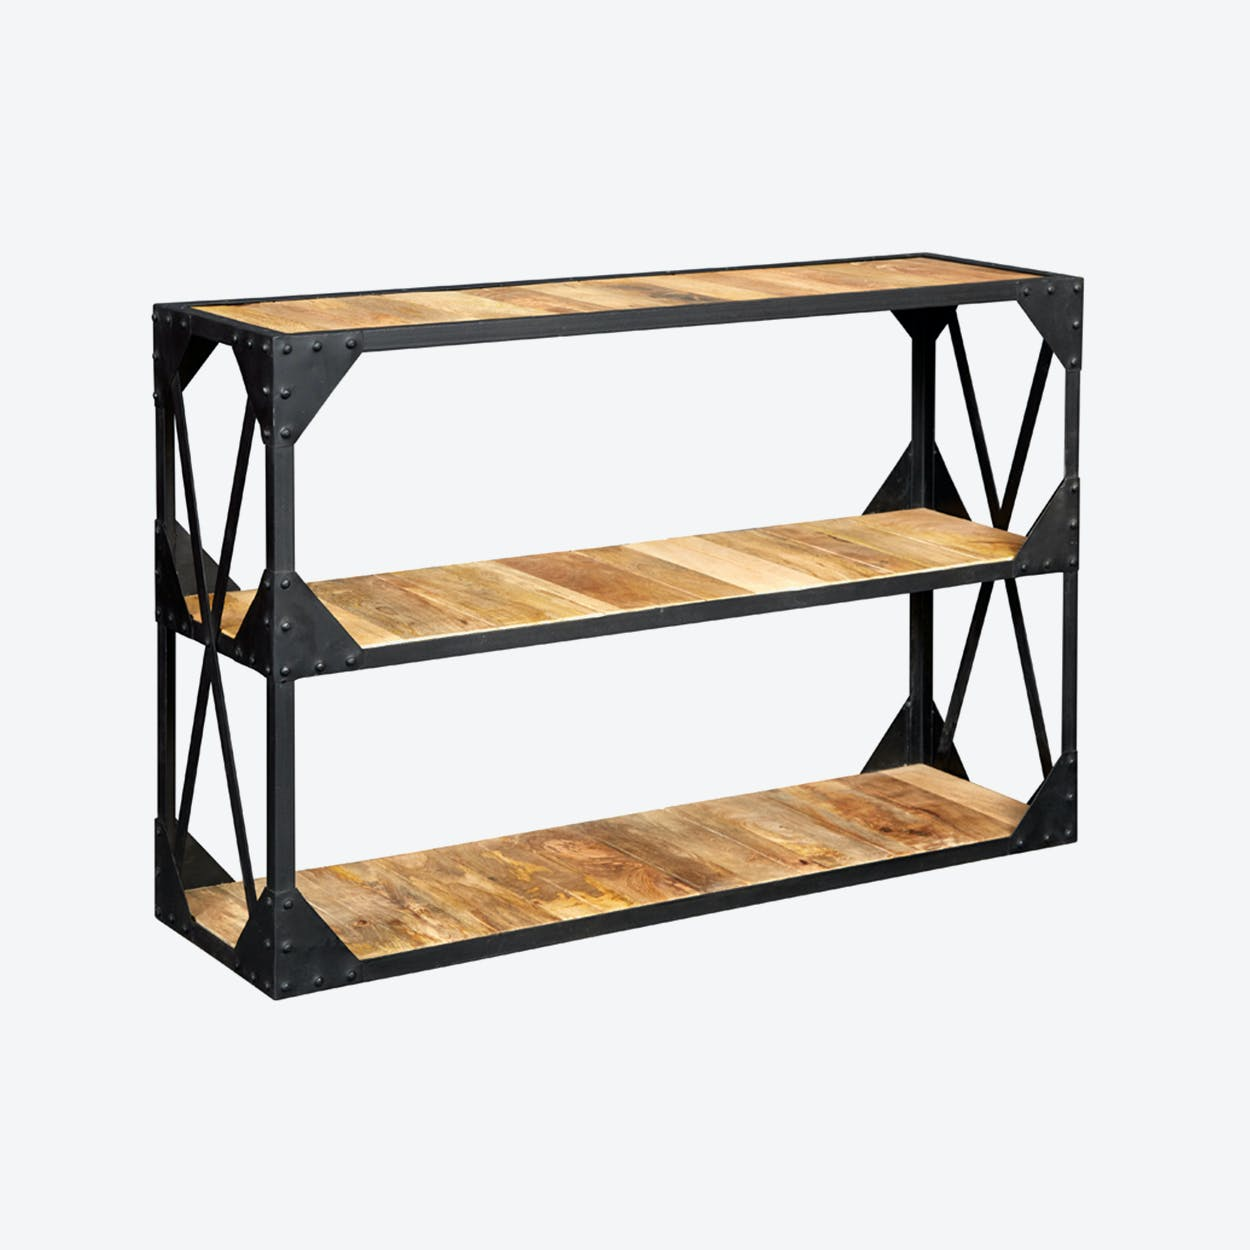 Reclaimed Wood Console Table/Tv Stand/Low Bookcase